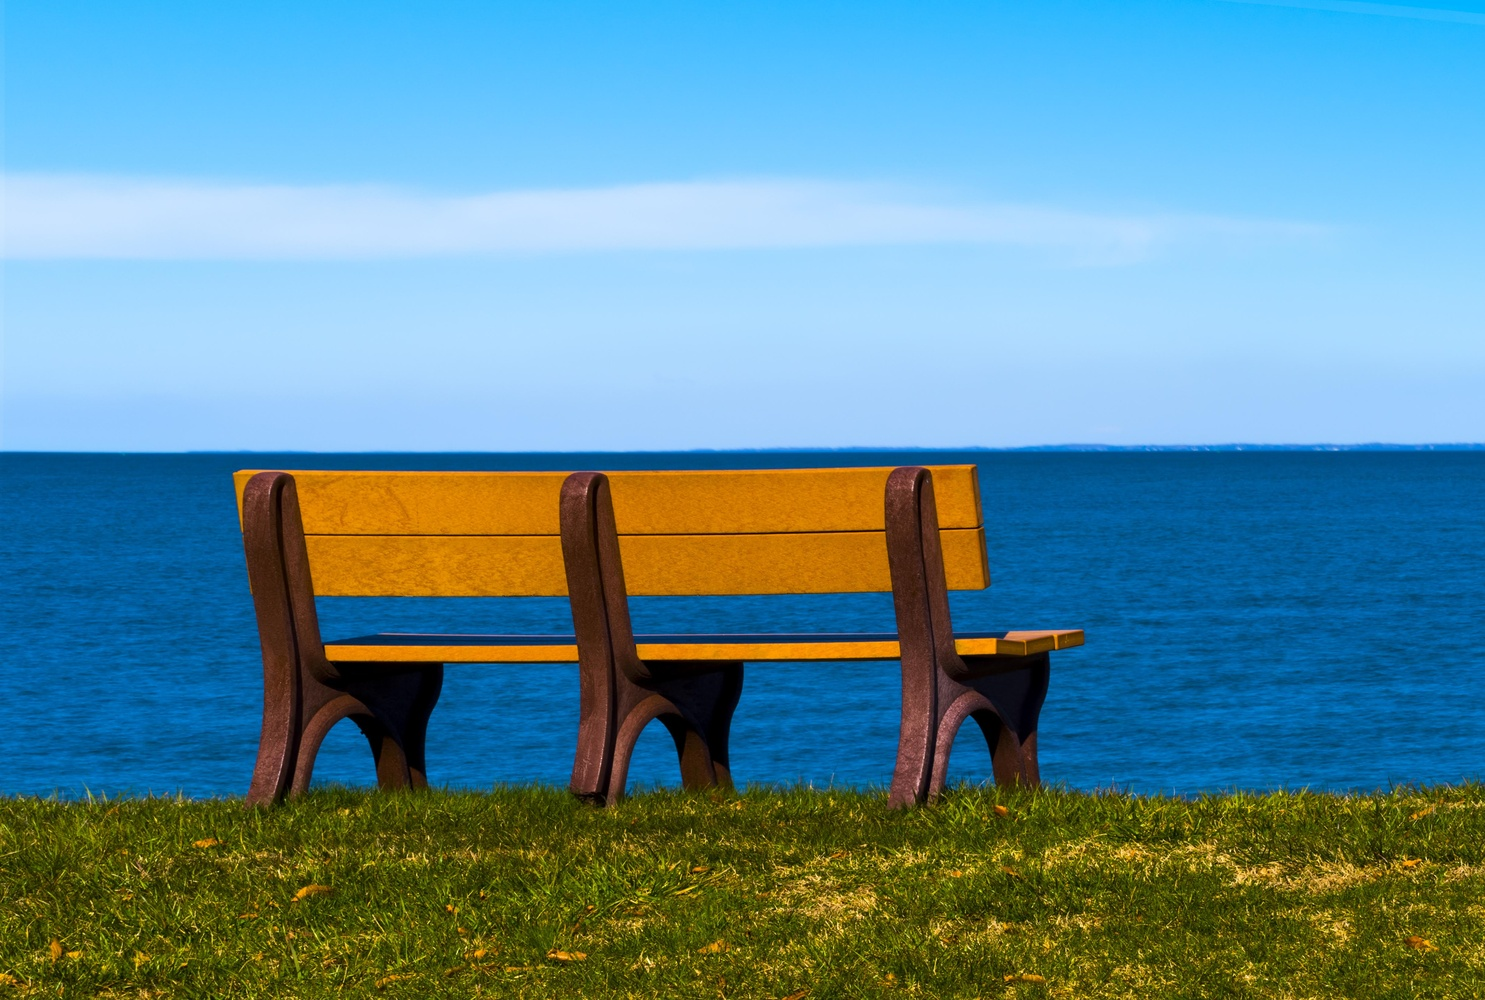 Bench on the Bay by Dave Haynie